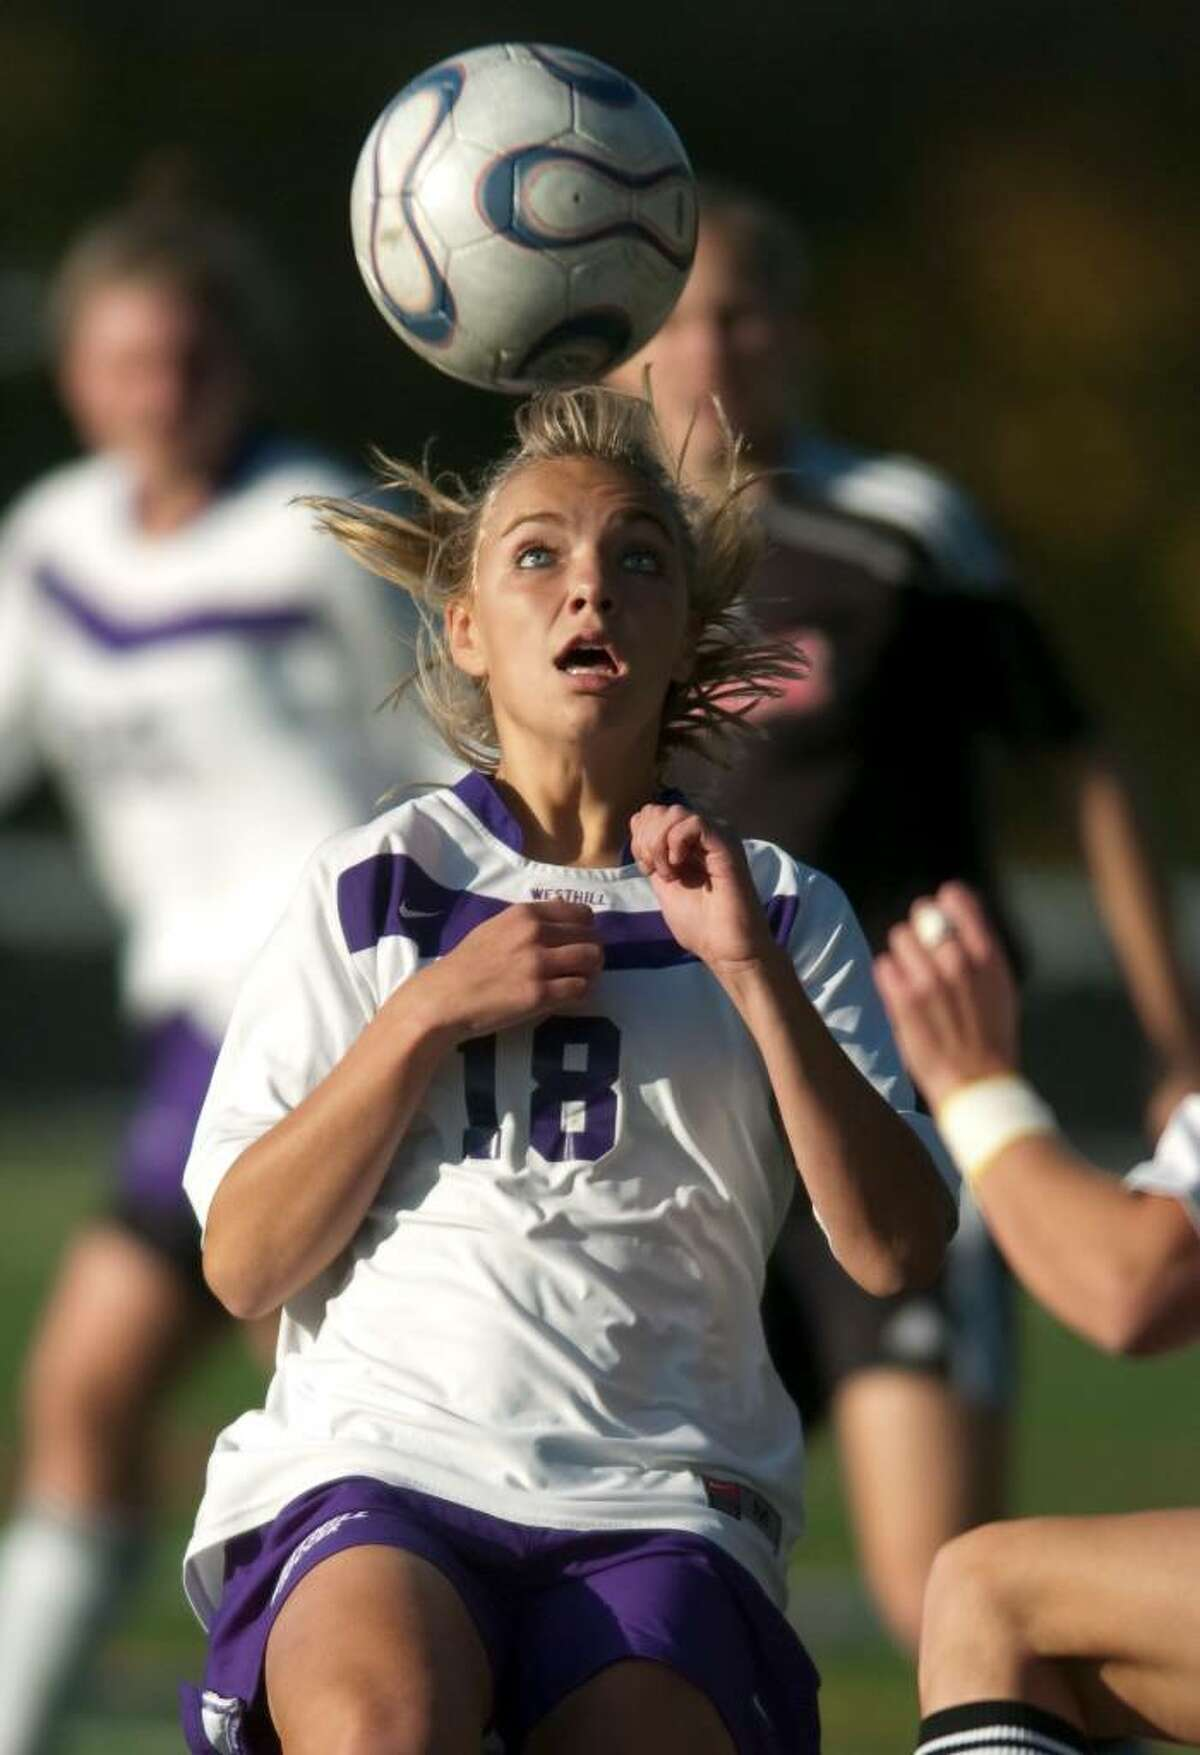 Nicole Eriksen keeps her eye on the ball during an FCIAC soccer game against Fairfield Warde High School at Westhill High School in Stamford, Conn. on Monday, Oct. 26, 2009.